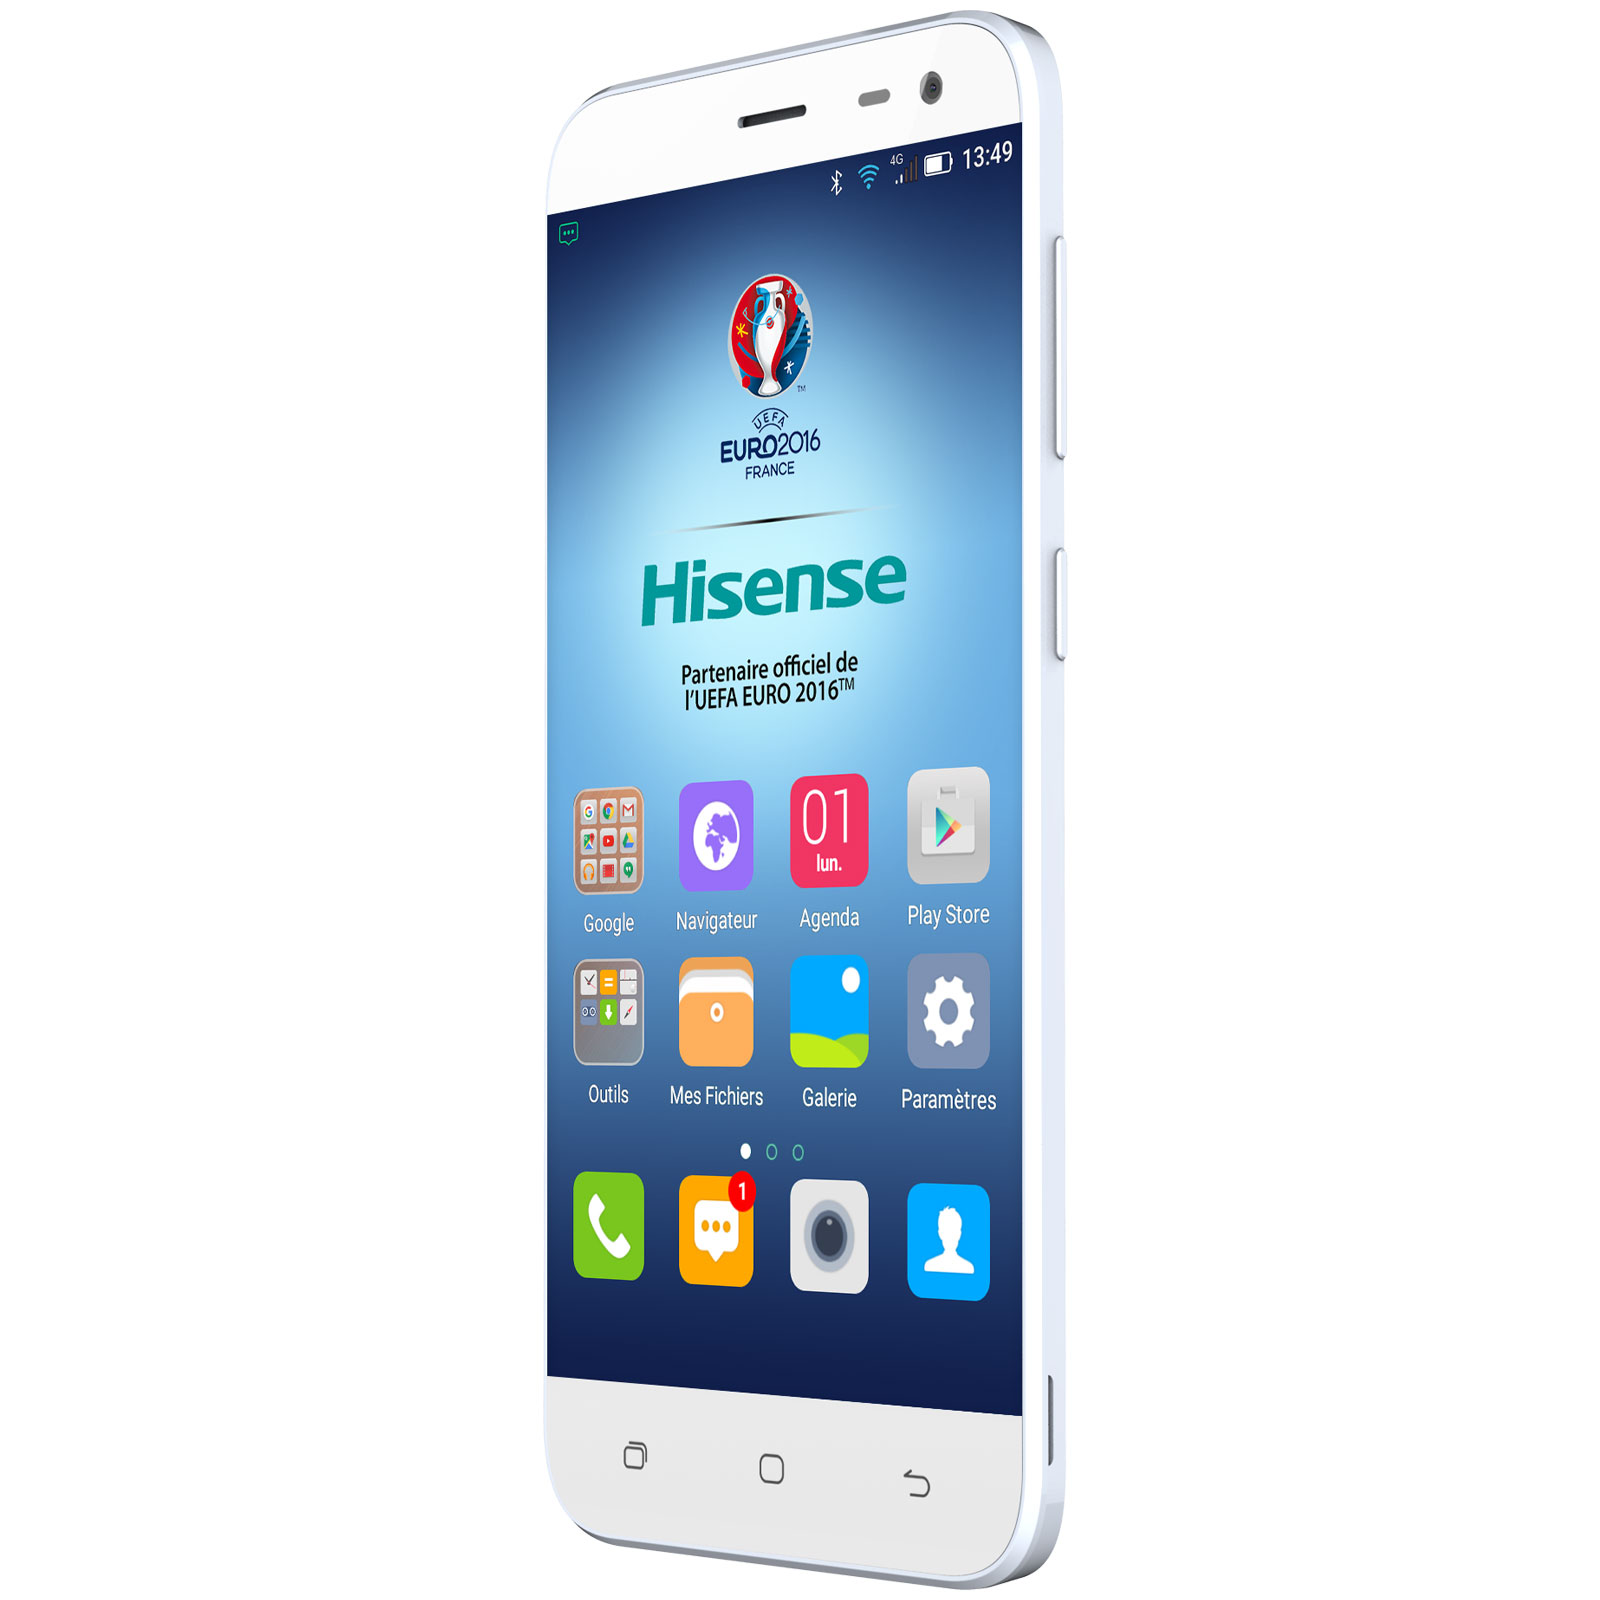 hisense d2 blanc mobile smartphone hisense sur ldlc. Black Bedroom Furniture Sets. Home Design Ideas